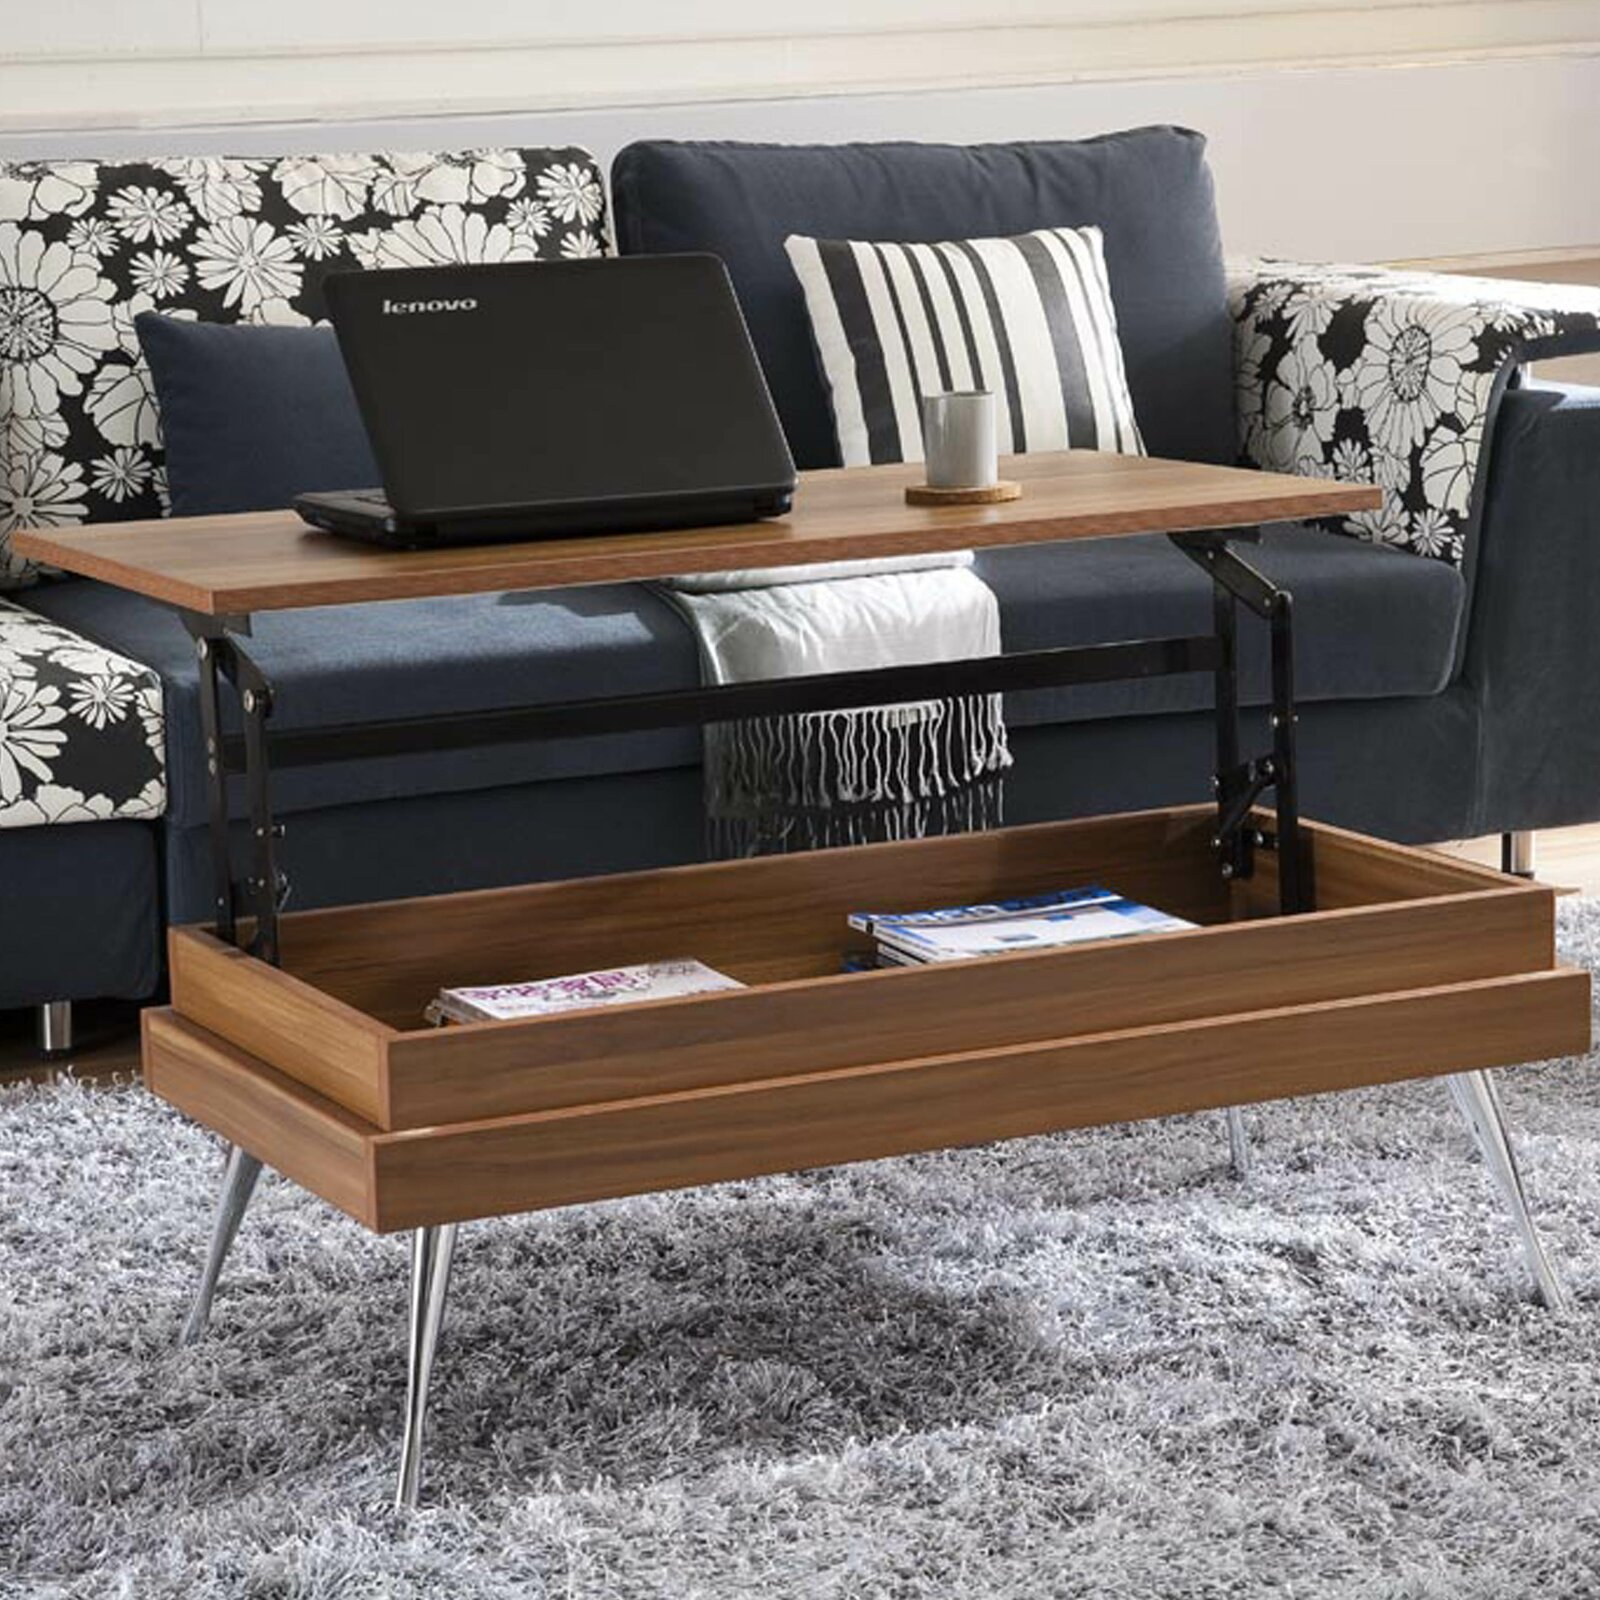 Lenora Lift Top Coffee Table with Storage